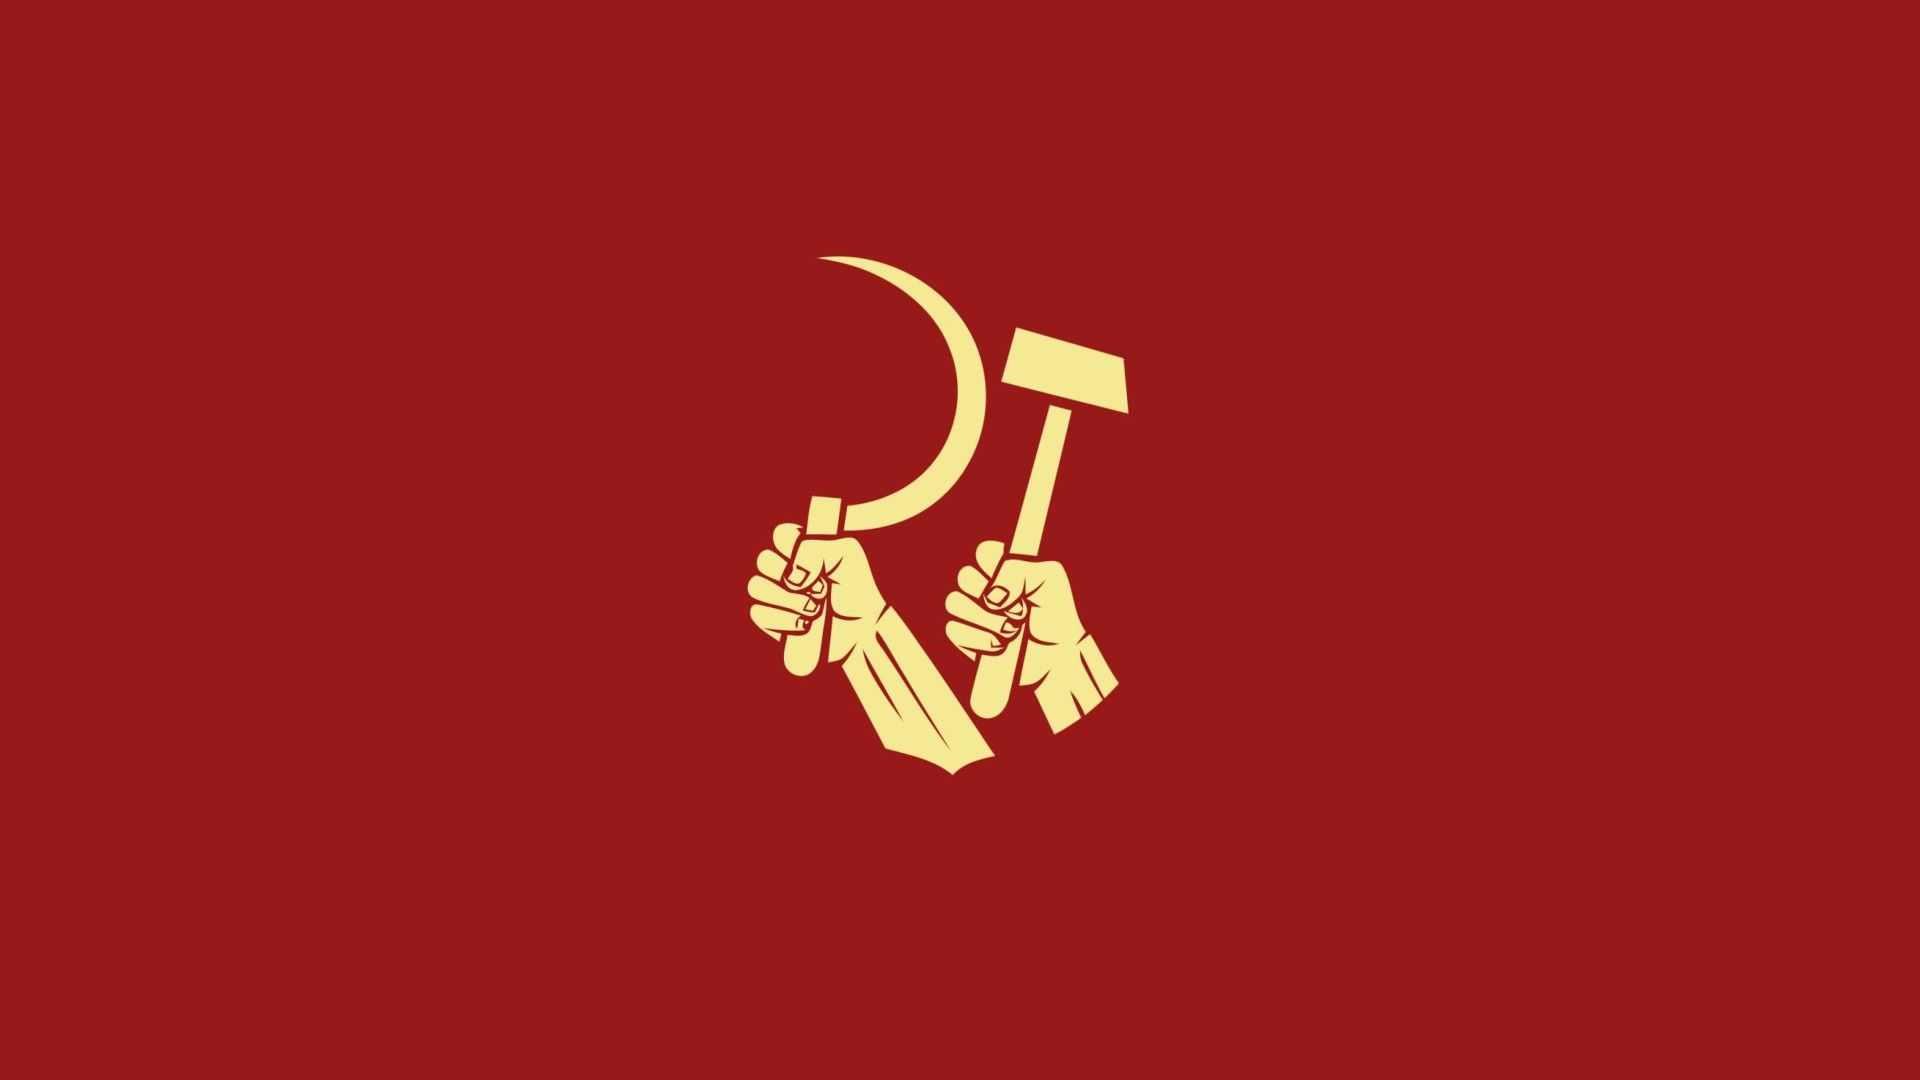 59 Iphone Communist Wallpapers On Wallpaperplay Foice E Martelo Wallpaper Animes Comunismo